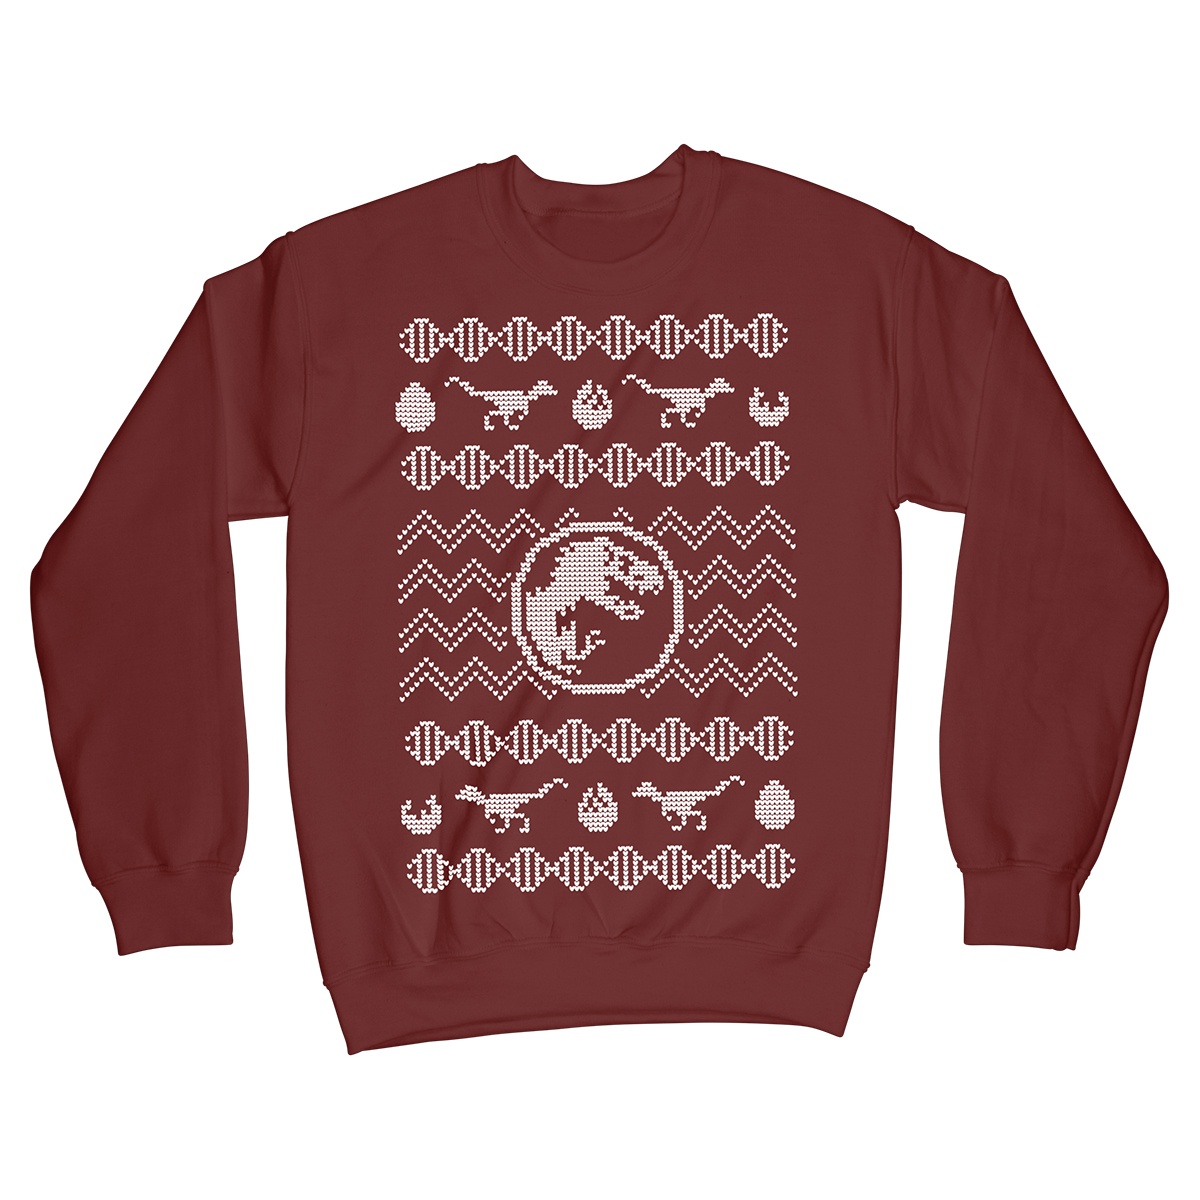 Jurassic Park Dinosaur T Rex Christmas Sweater from Something Vicious